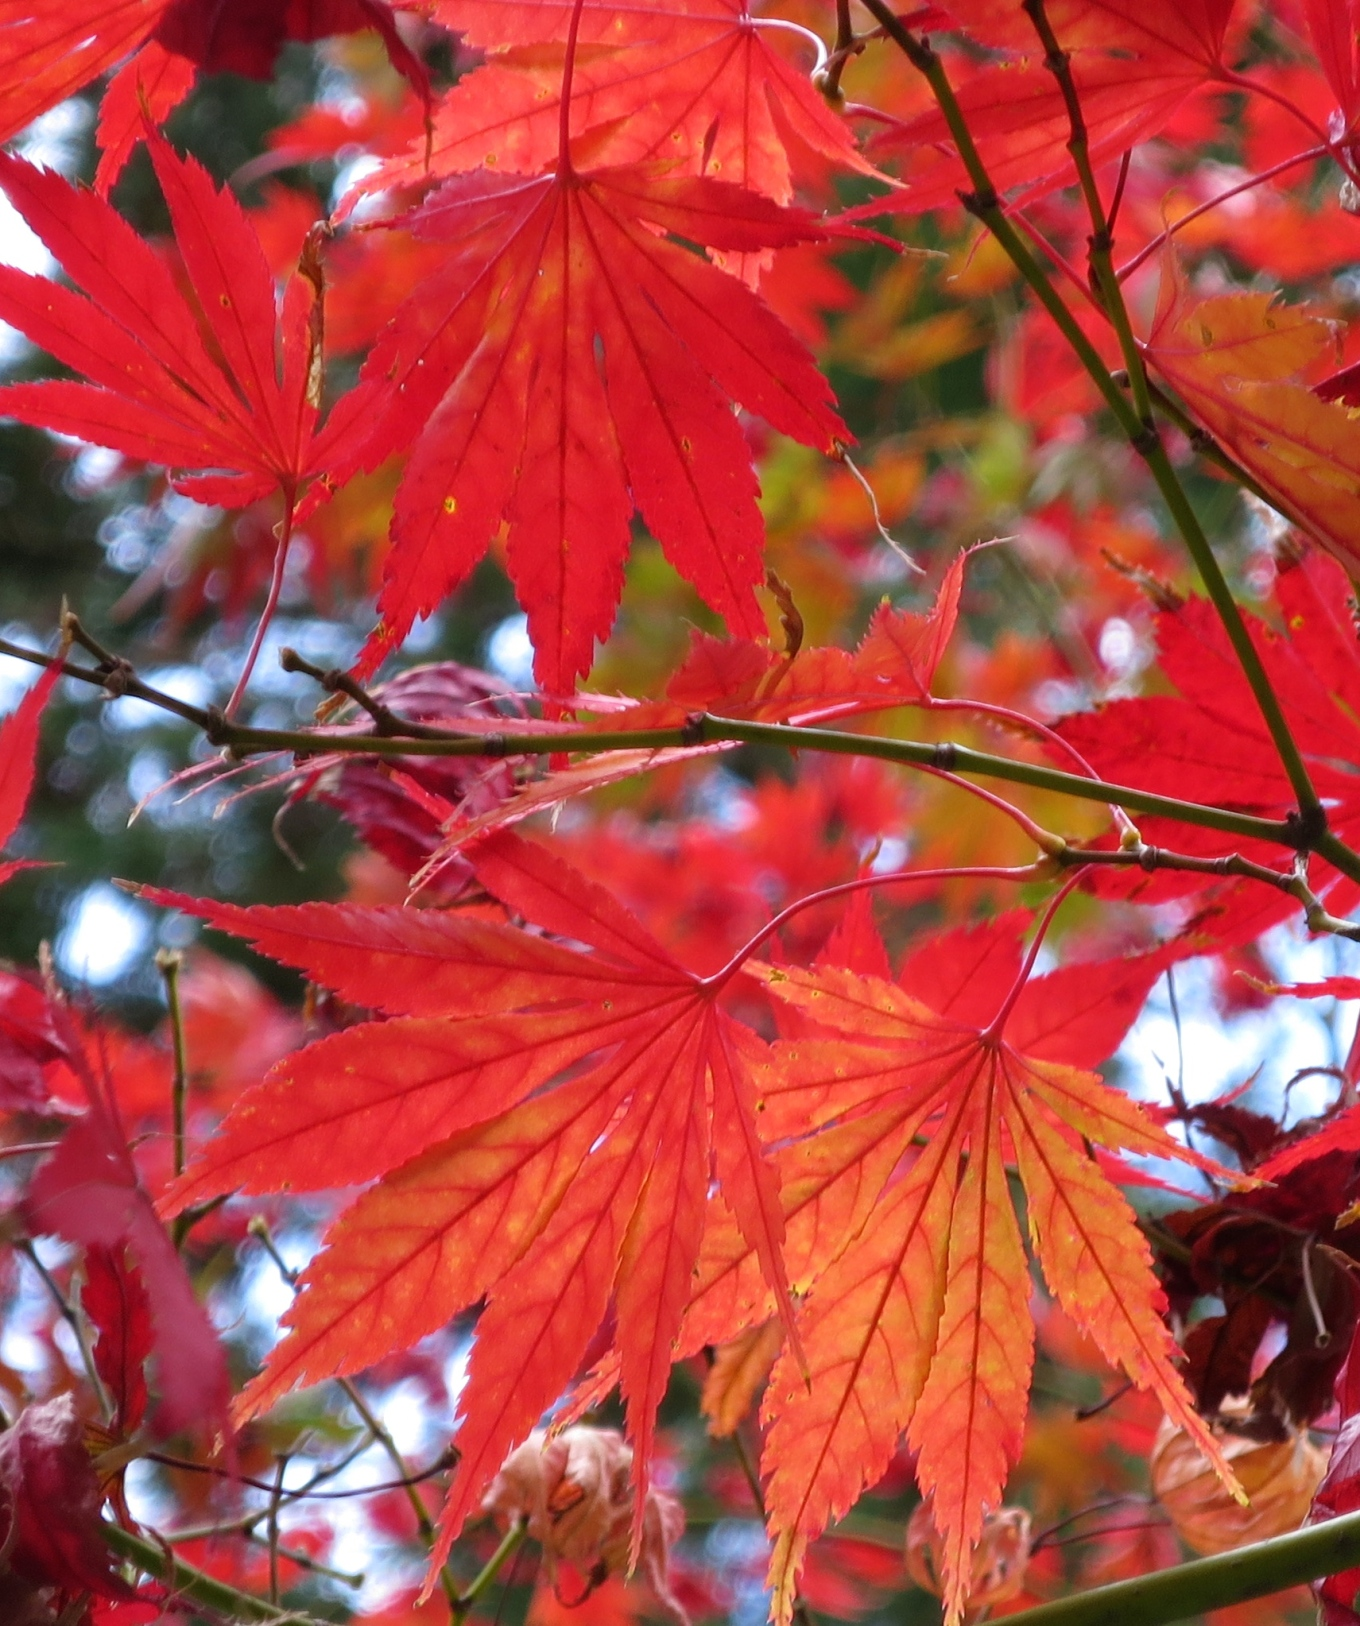 The maples are in full color by the end of November.